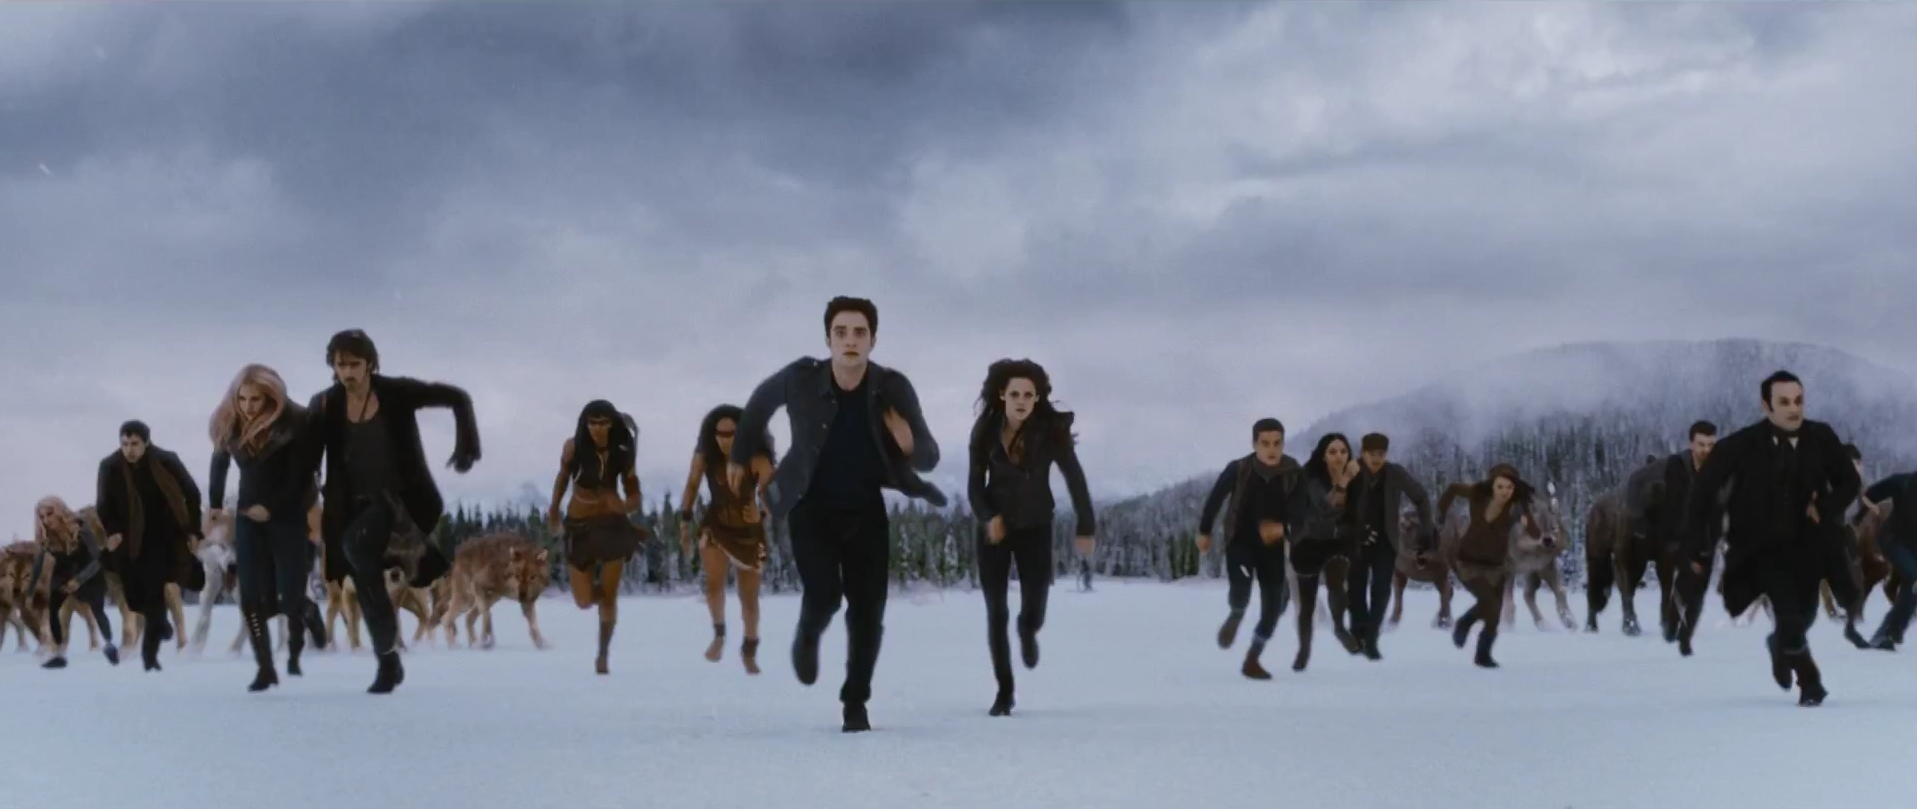 Twilight guerre finale